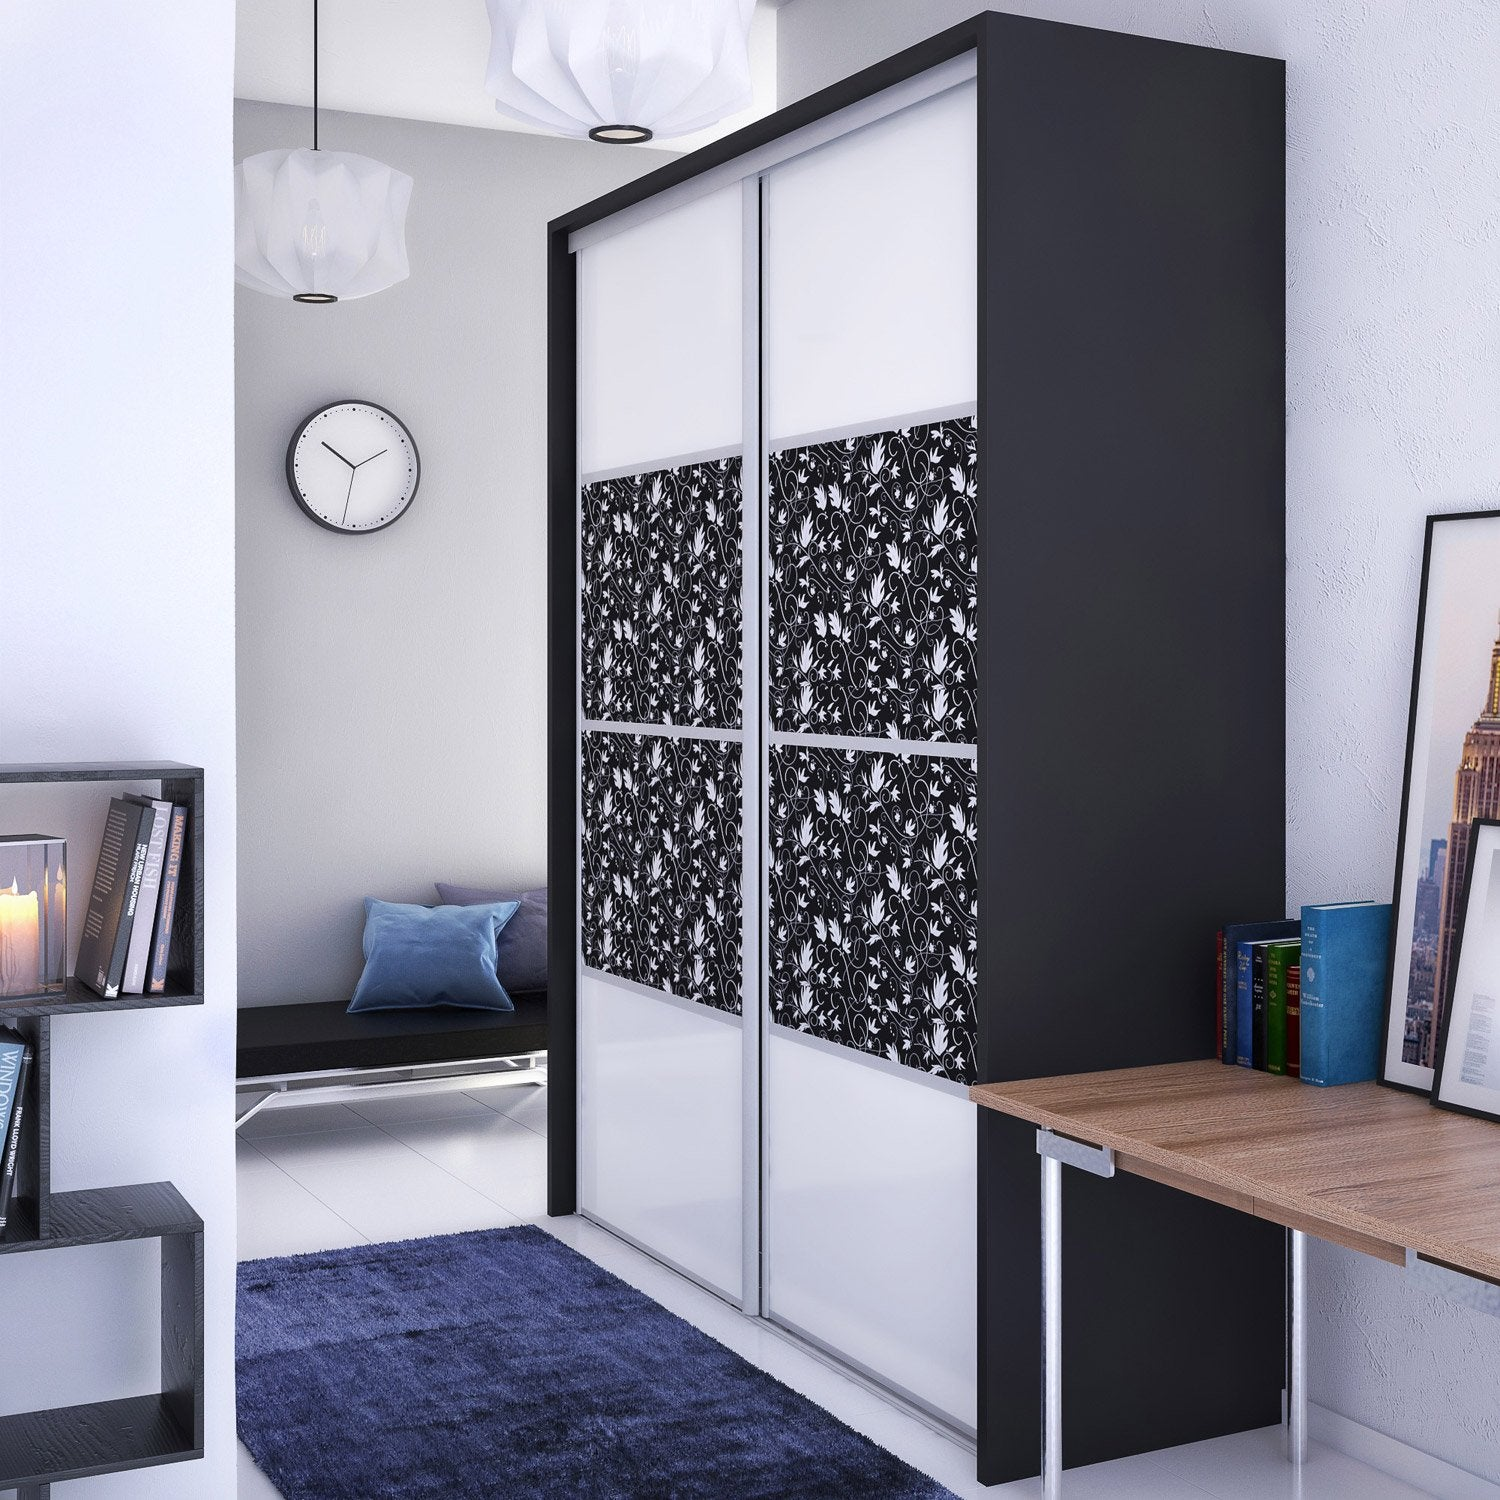 habillage porte placard coulissant excellent systme geom. Black Bedroom Furniture Sets. Home Design Ideas